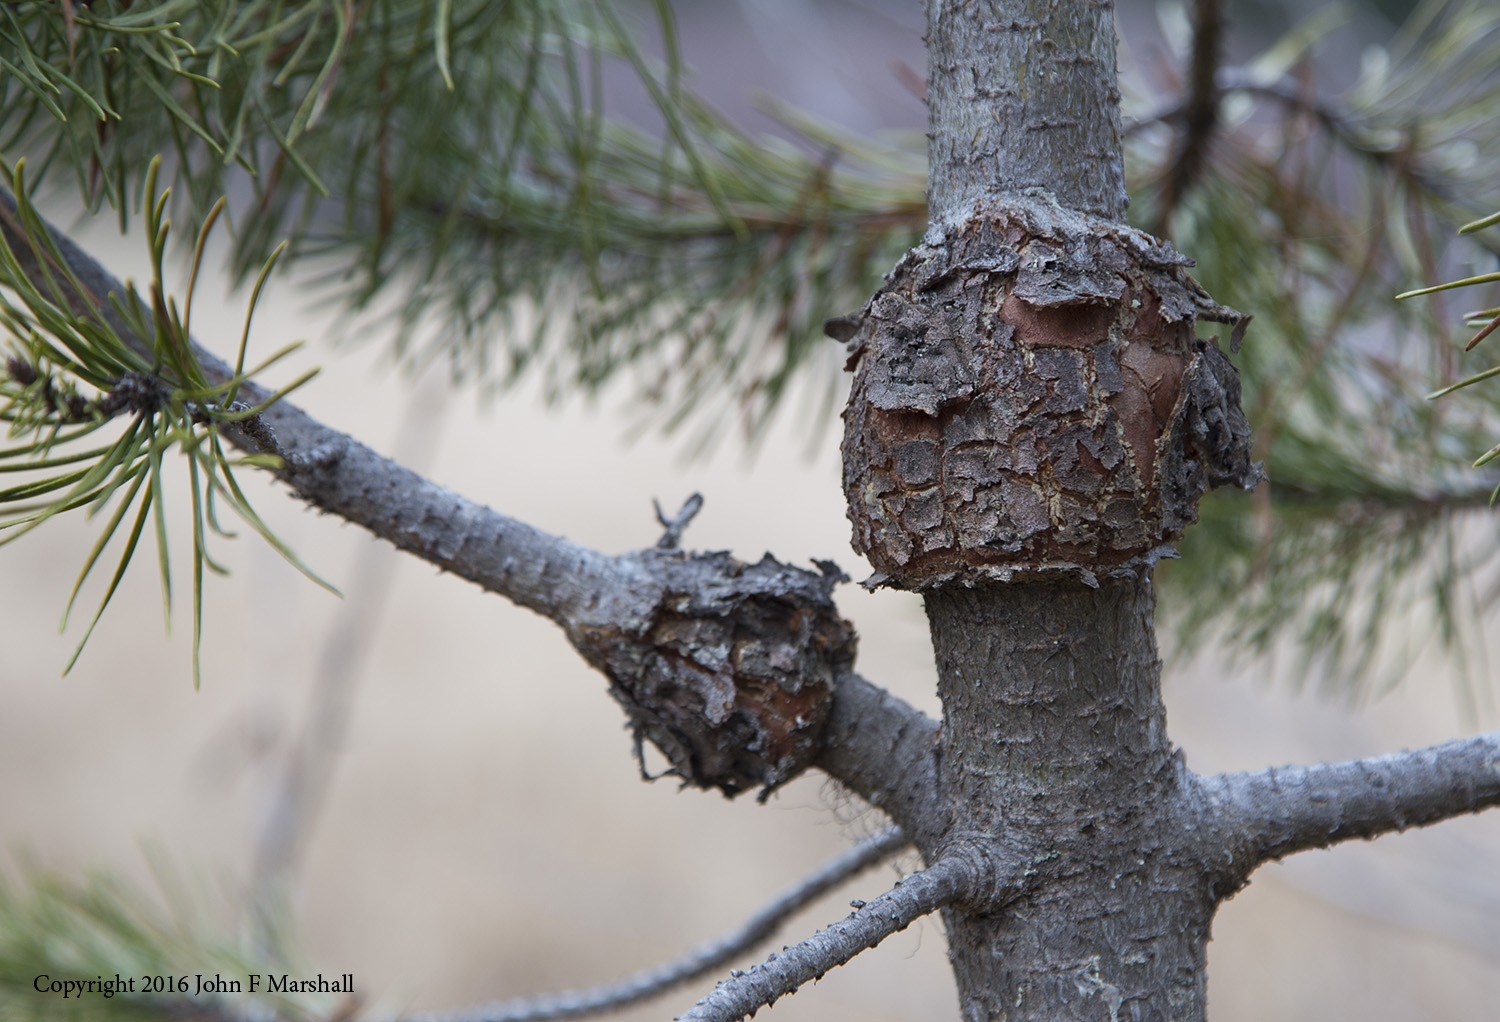 Western gall rust,  Peridermium harknessii,  causes galls and cankers to form on the branches and boles of lodgepole pine.  The fungal disease is spread from tree to tree by wind-borne spores, with major infections happening every five to ten years.